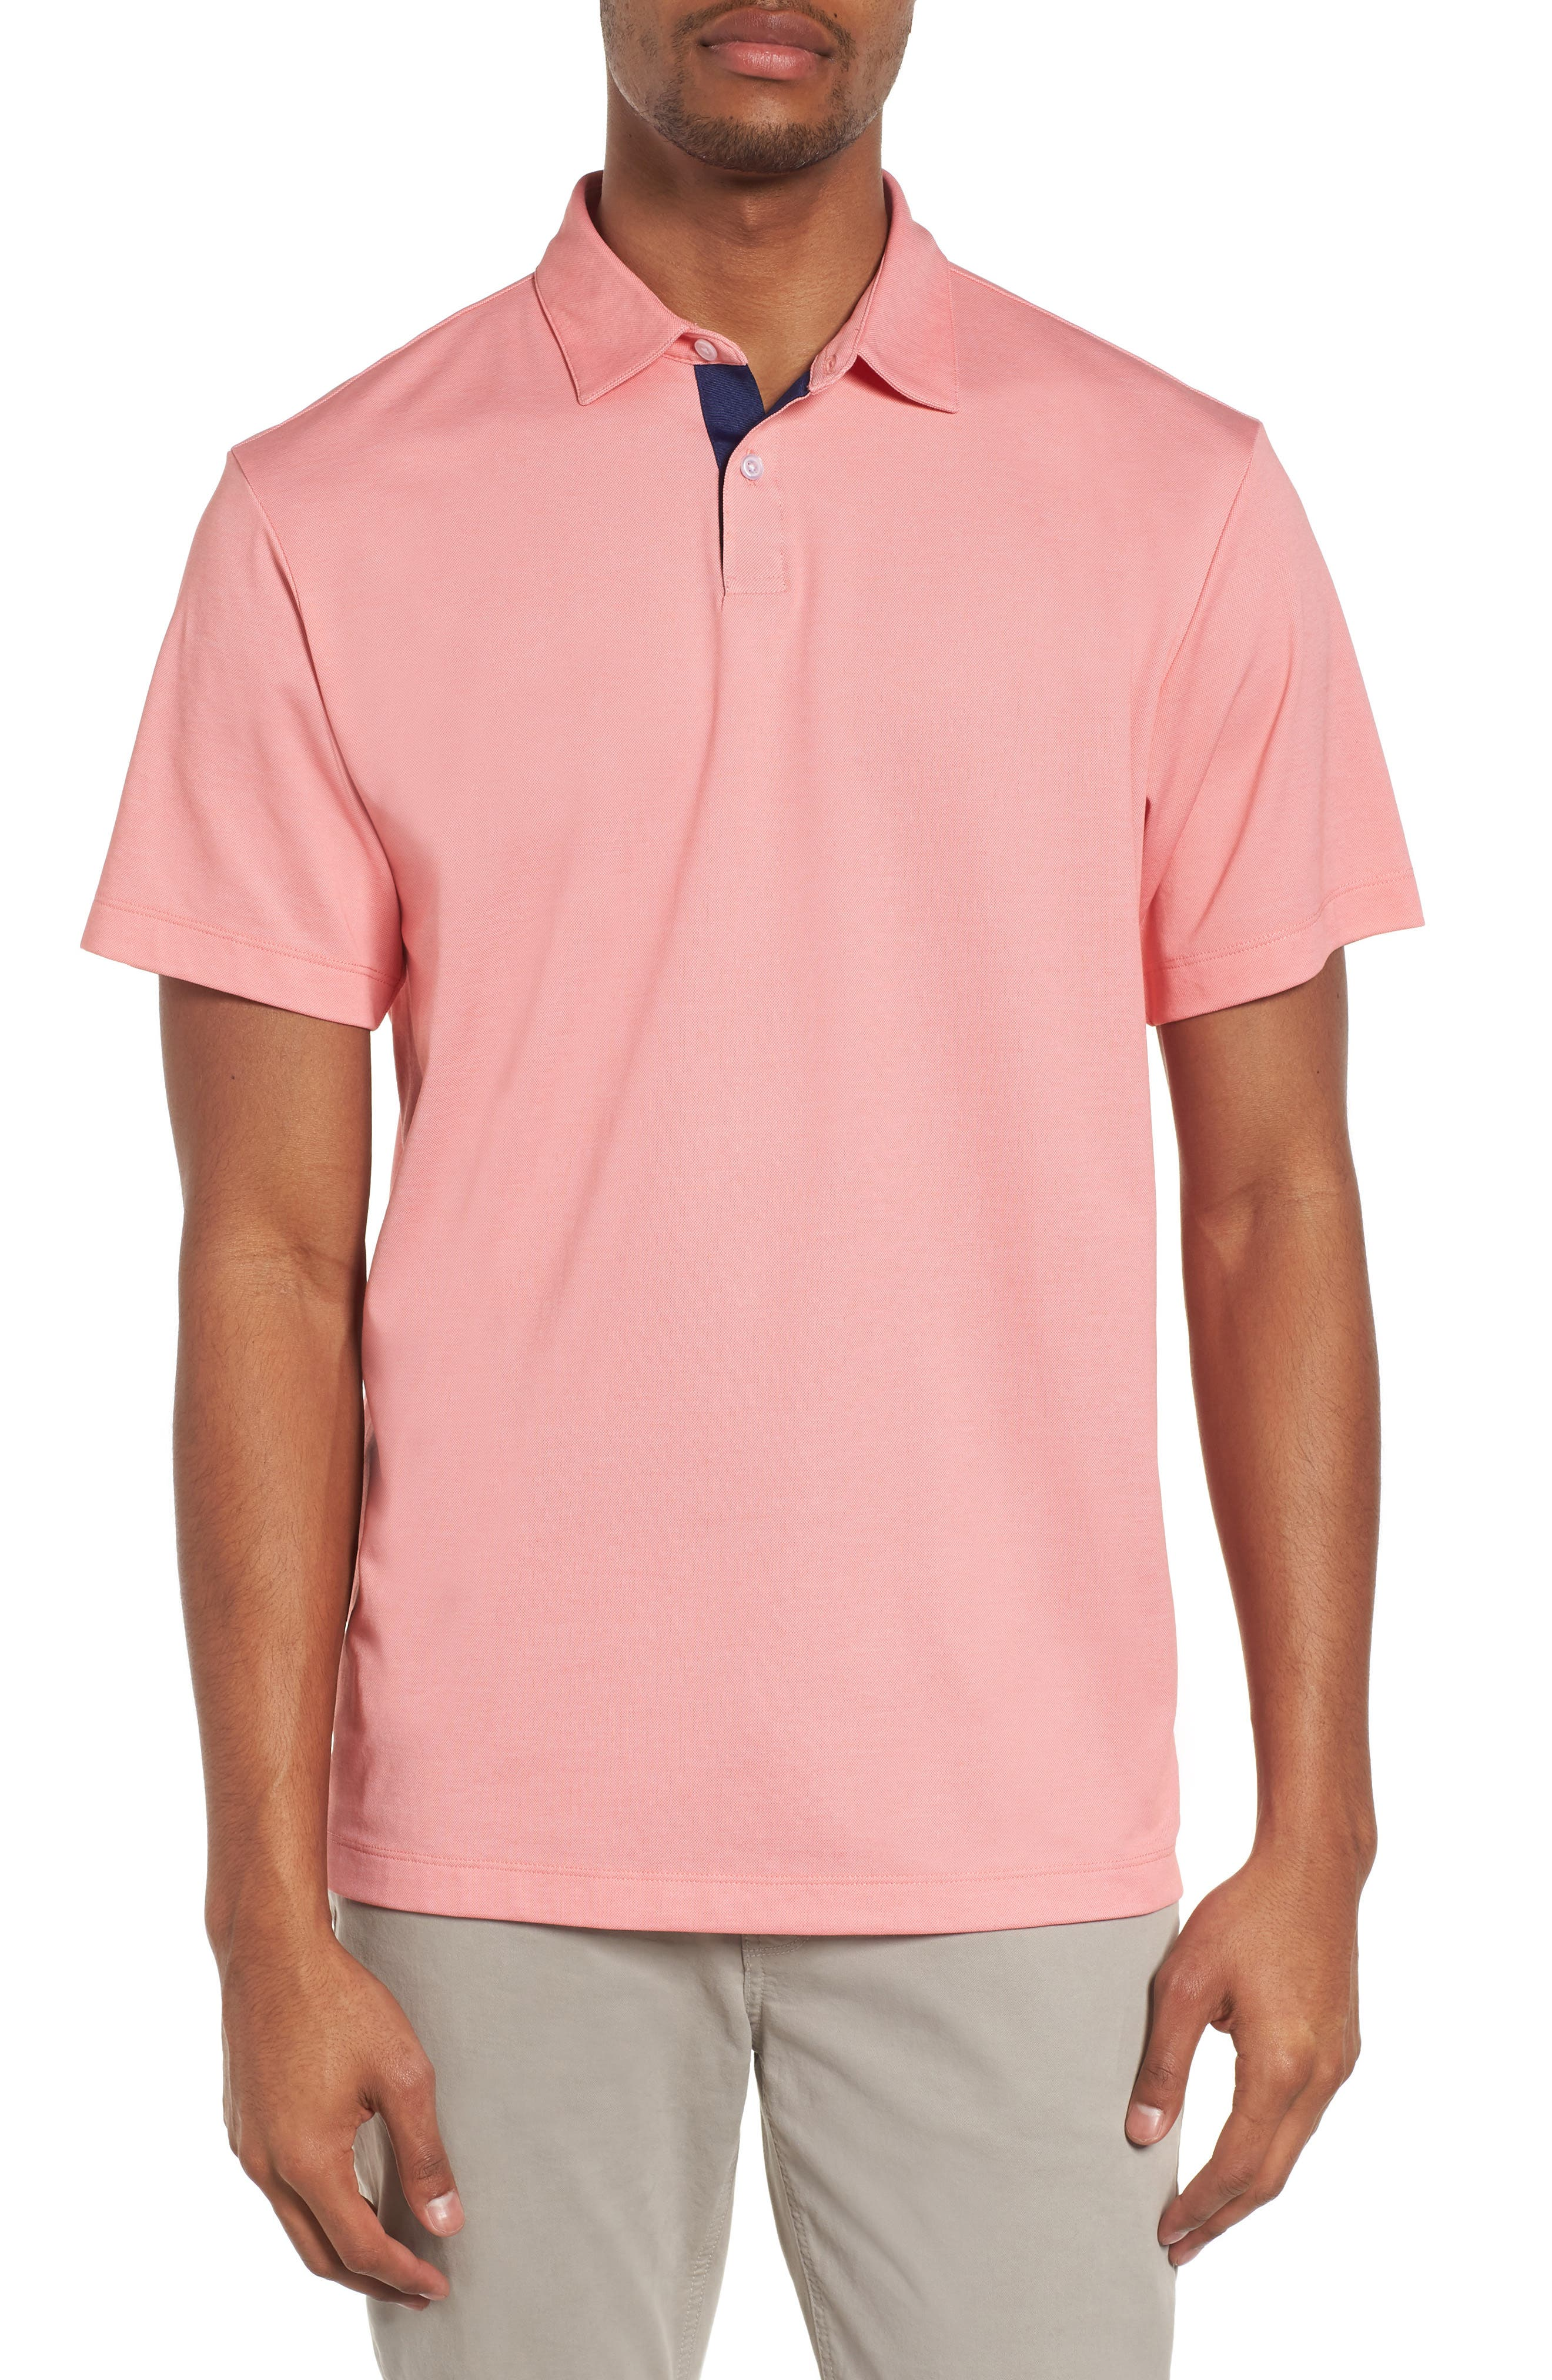 Andrew Regular Fit Piqué Polo,                             Main thumbnail 1, color,                             Coral